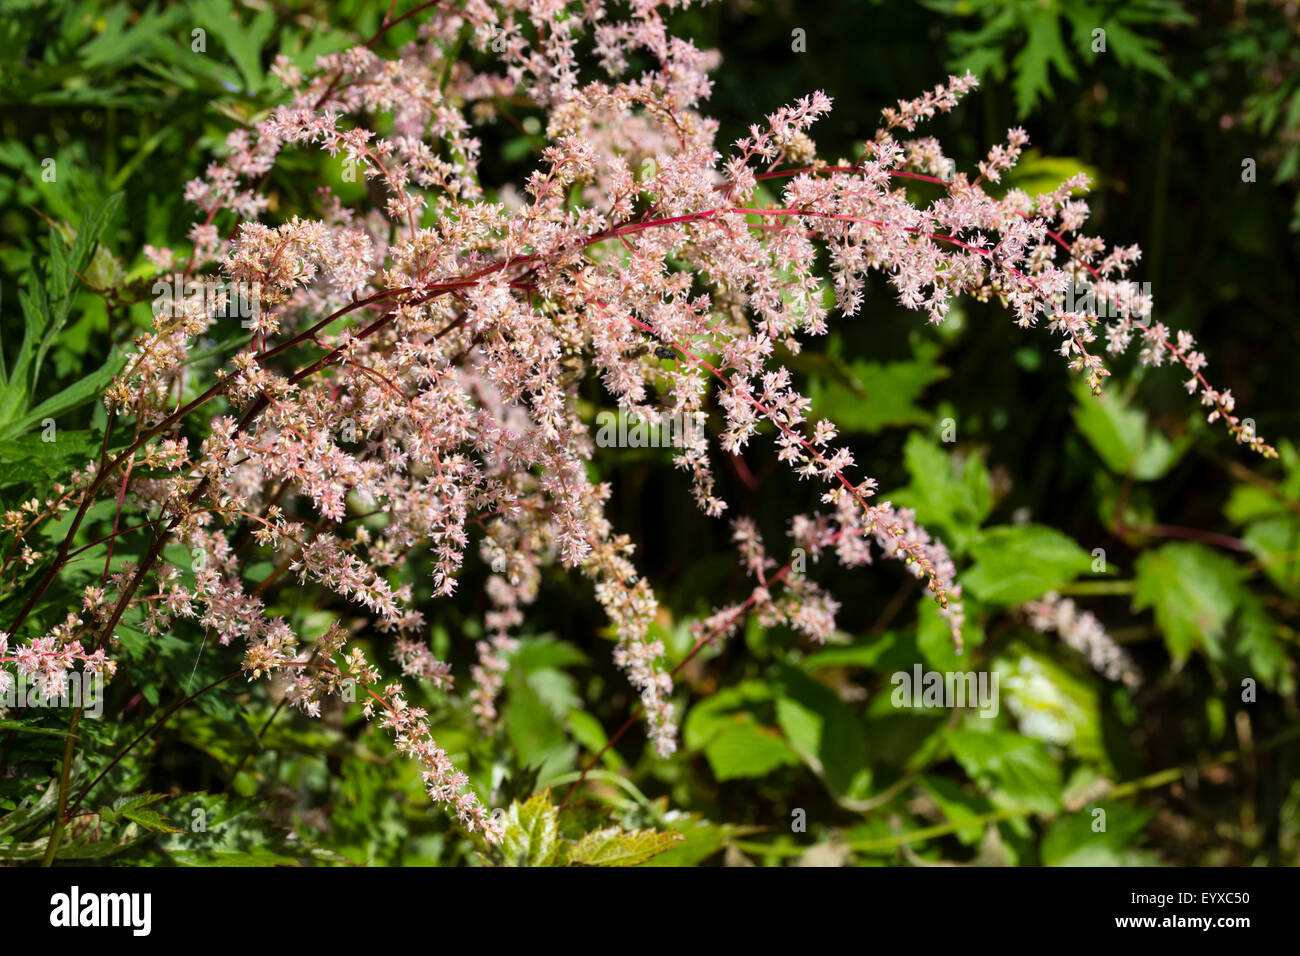 White astilbe flowers flowering stock photos white astilbe flowers white pink feathery flowers of the recently introduced moisture loving perennial astilbe mightylinksfo